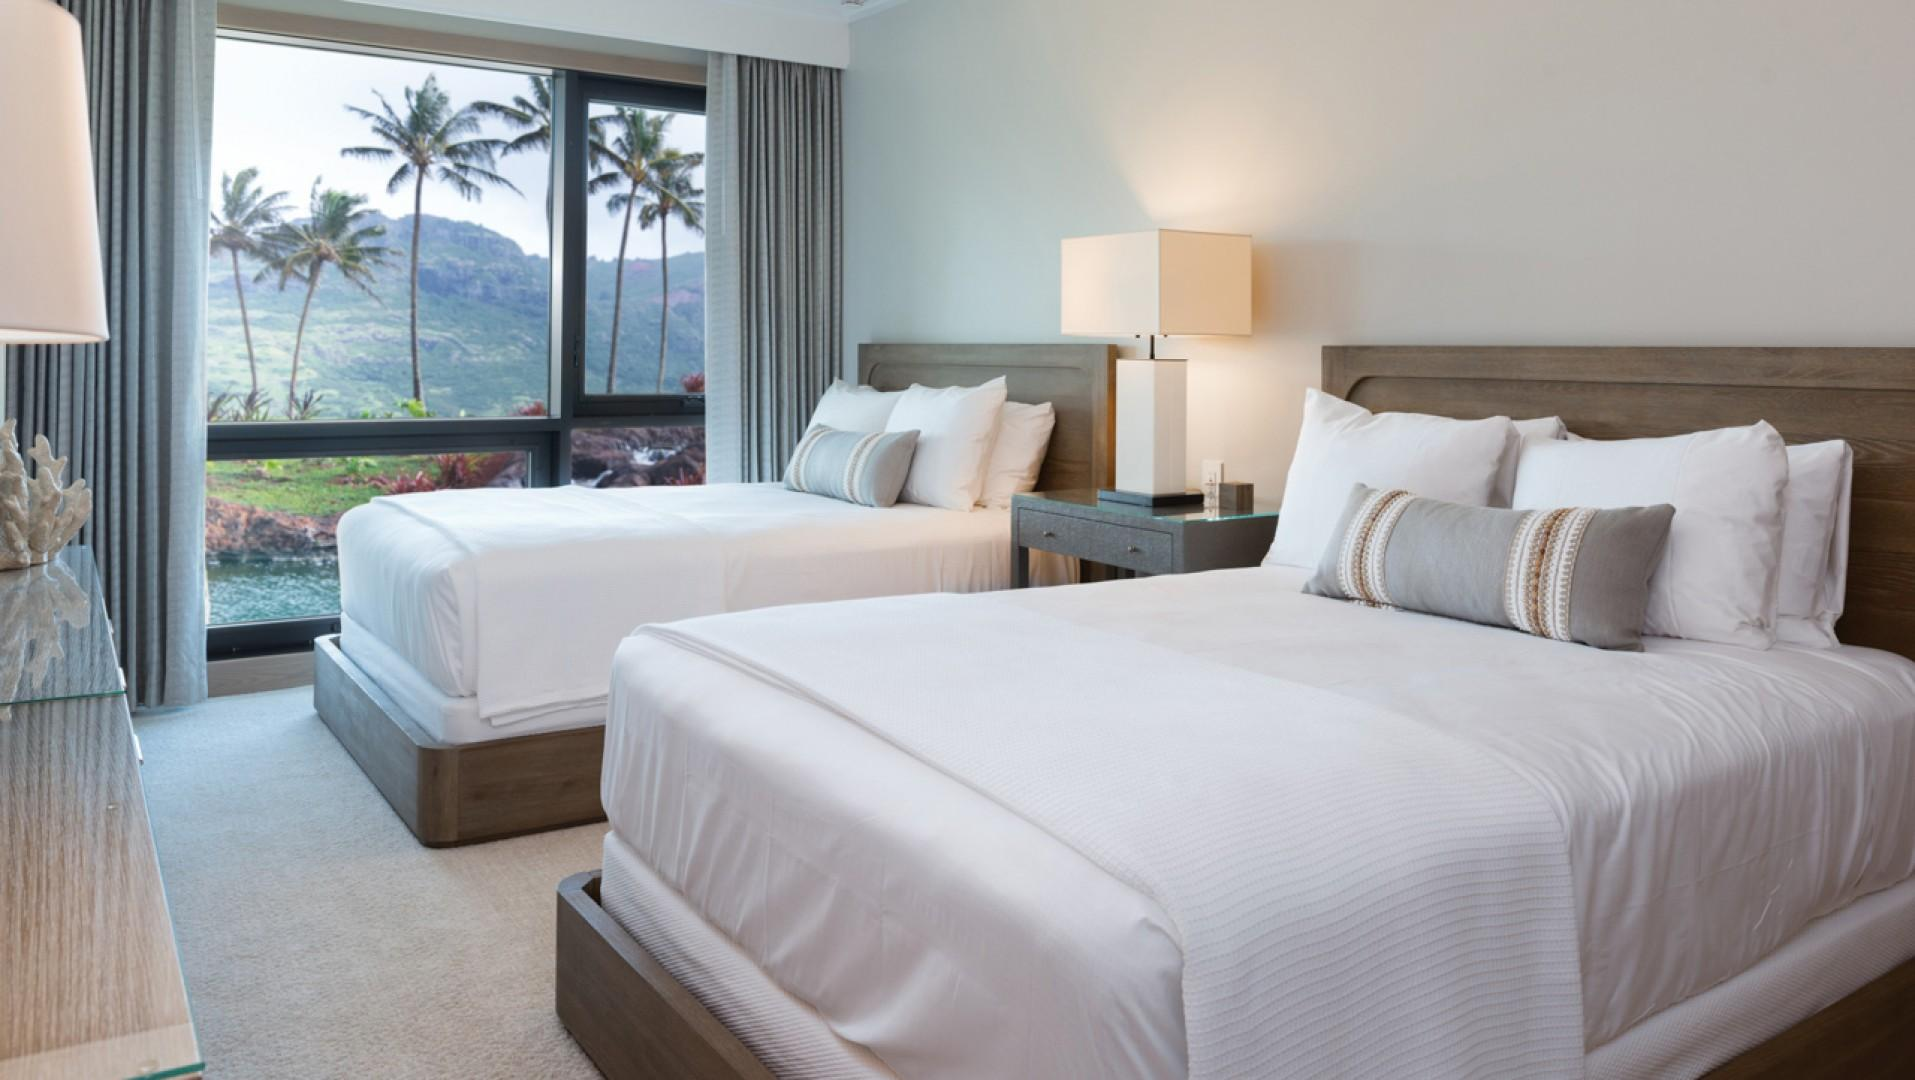 The third bedroom features two queen-size beds.